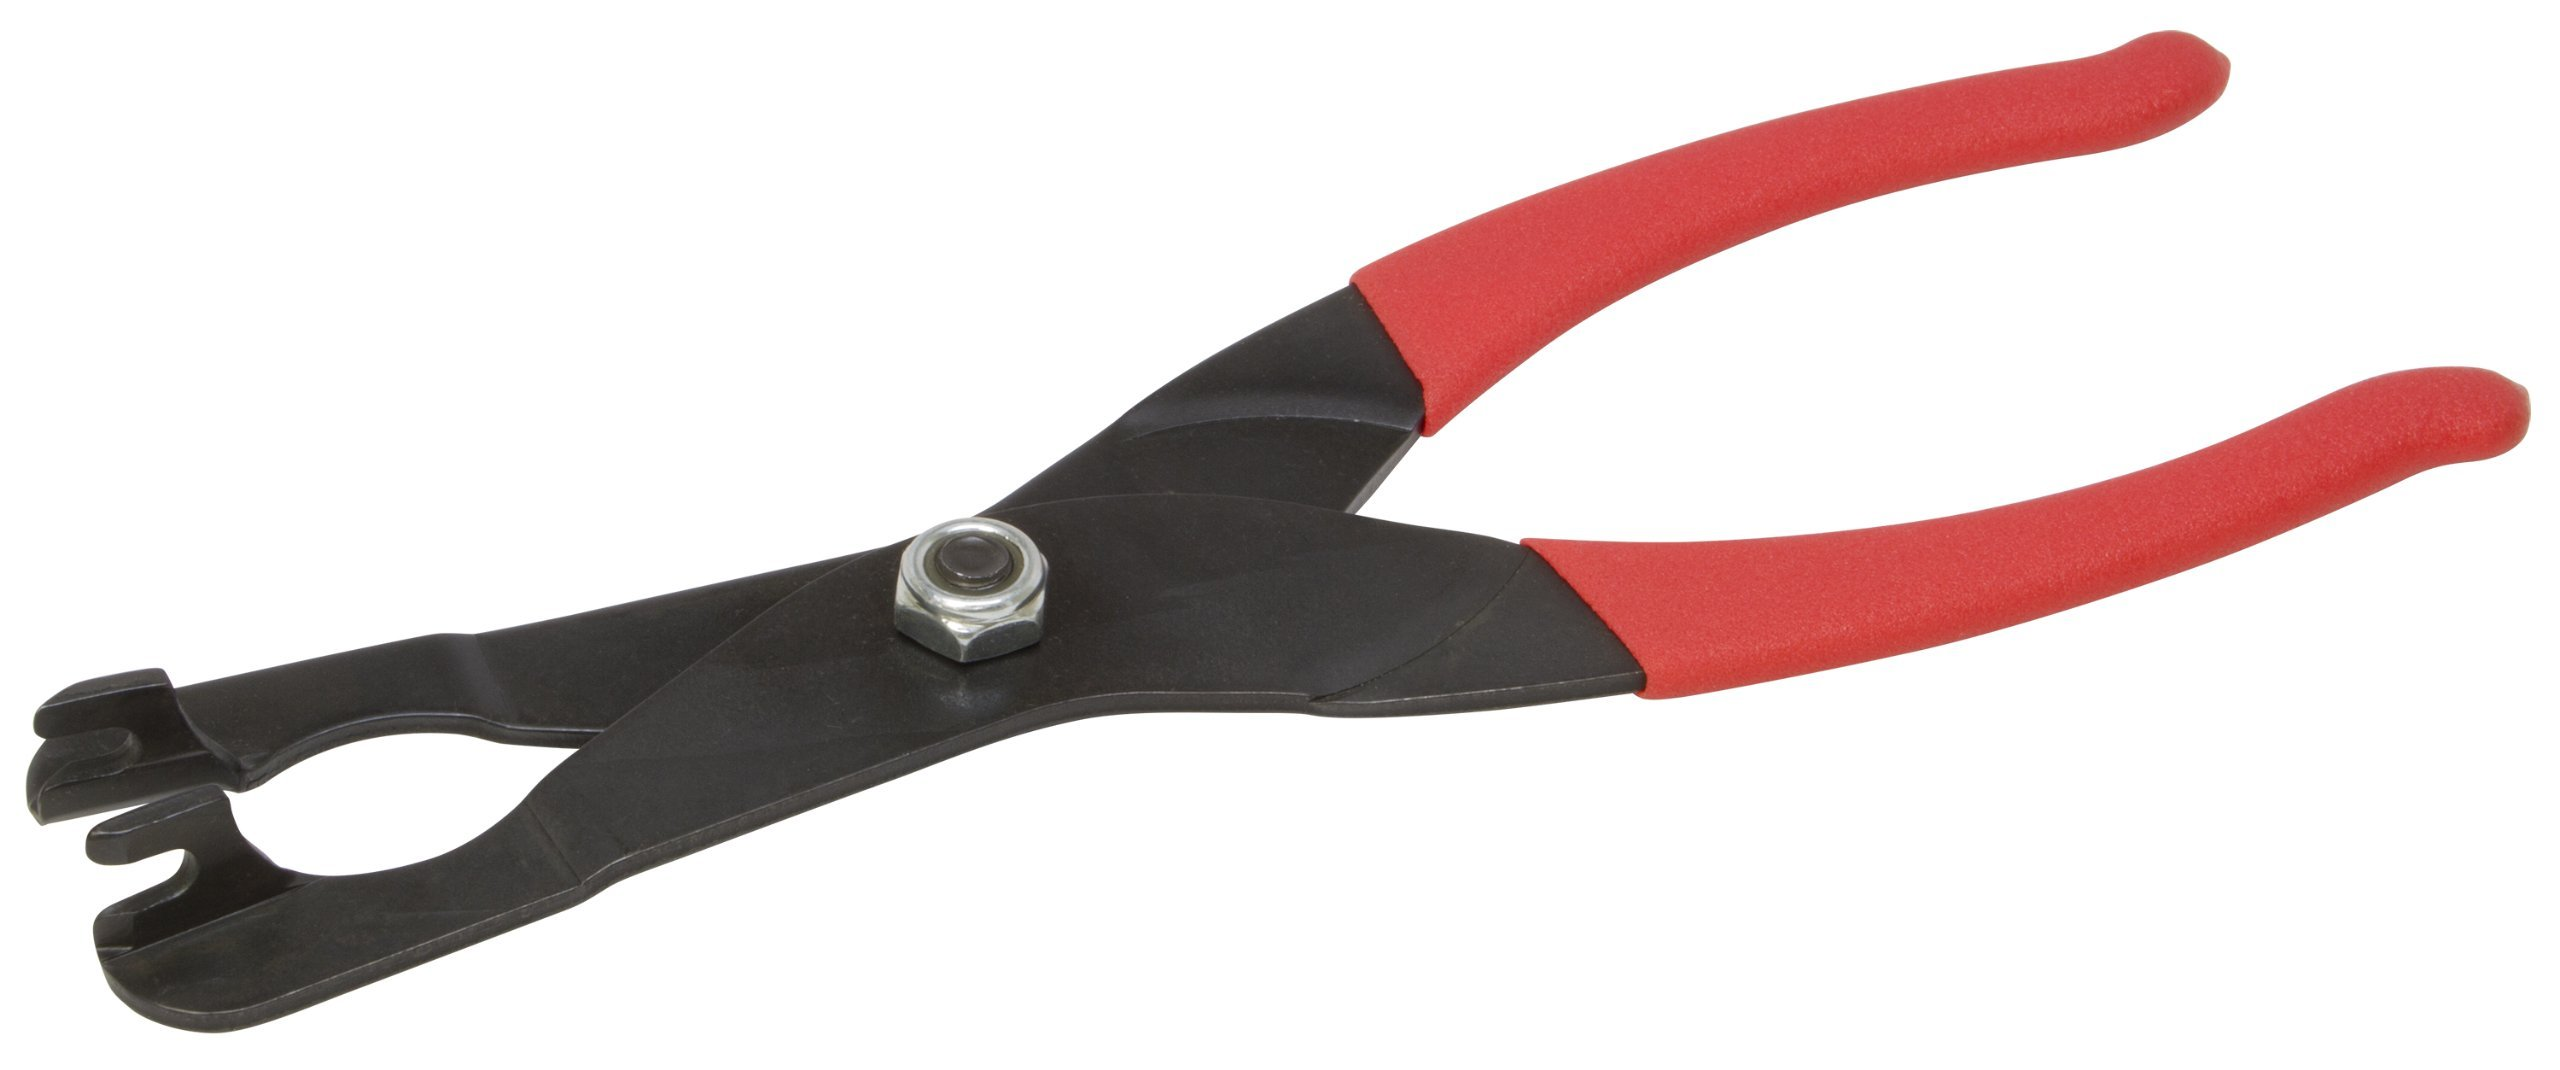 Lisle 44210 Universal Emergency Brake Tool by Lisle